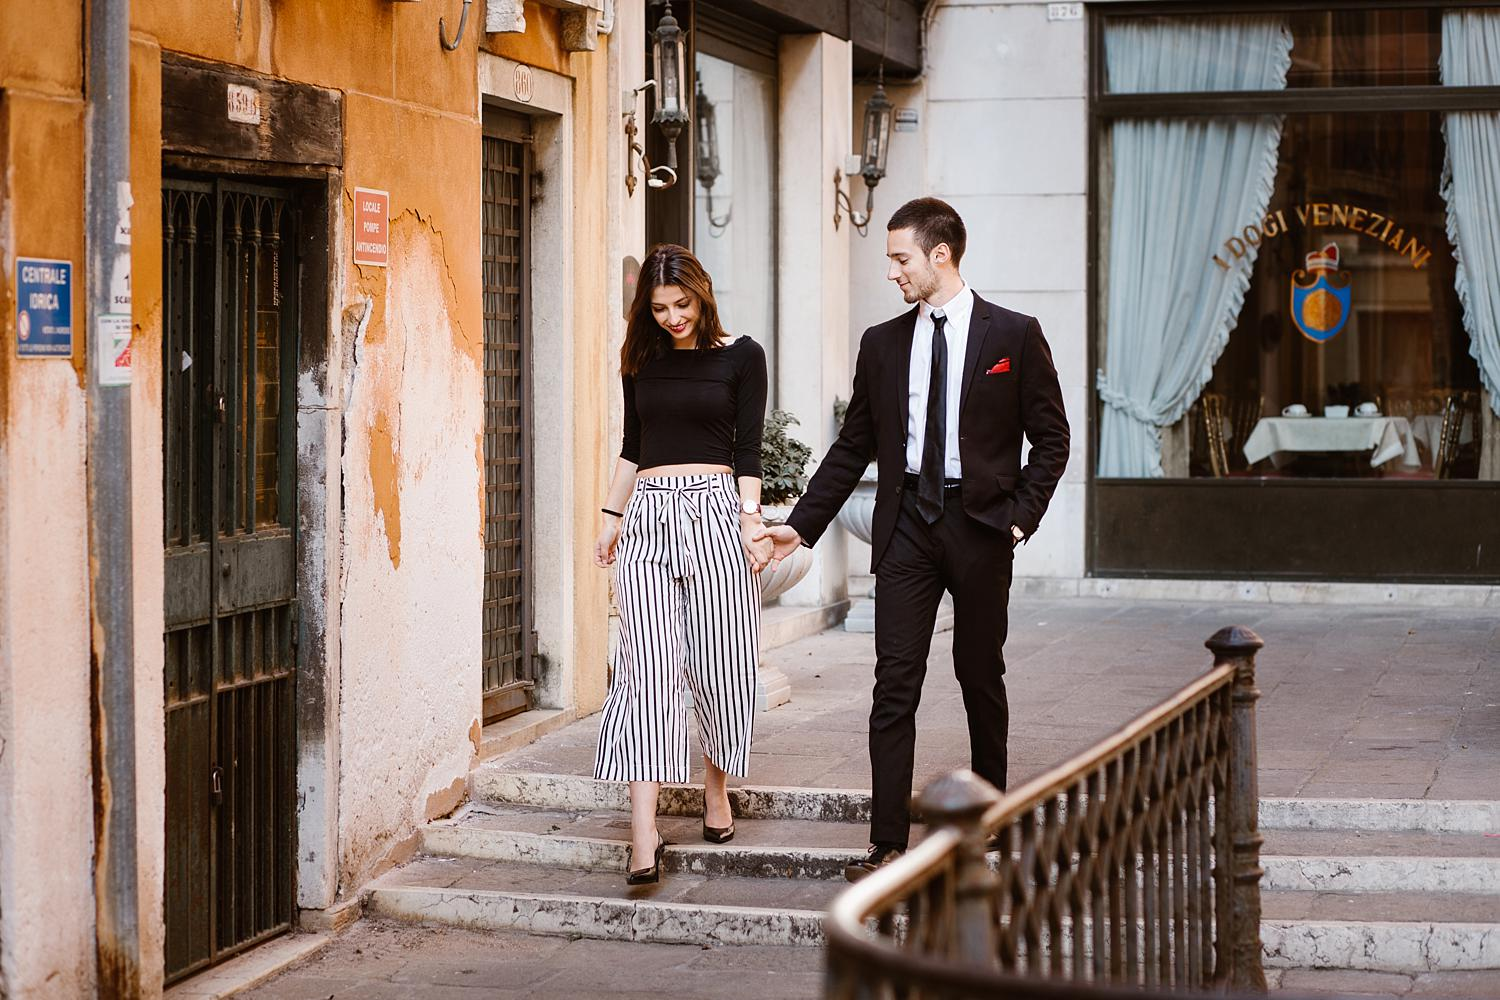 GL 10 - Giulia & Leonardo - An Intimate Shooting in Venice